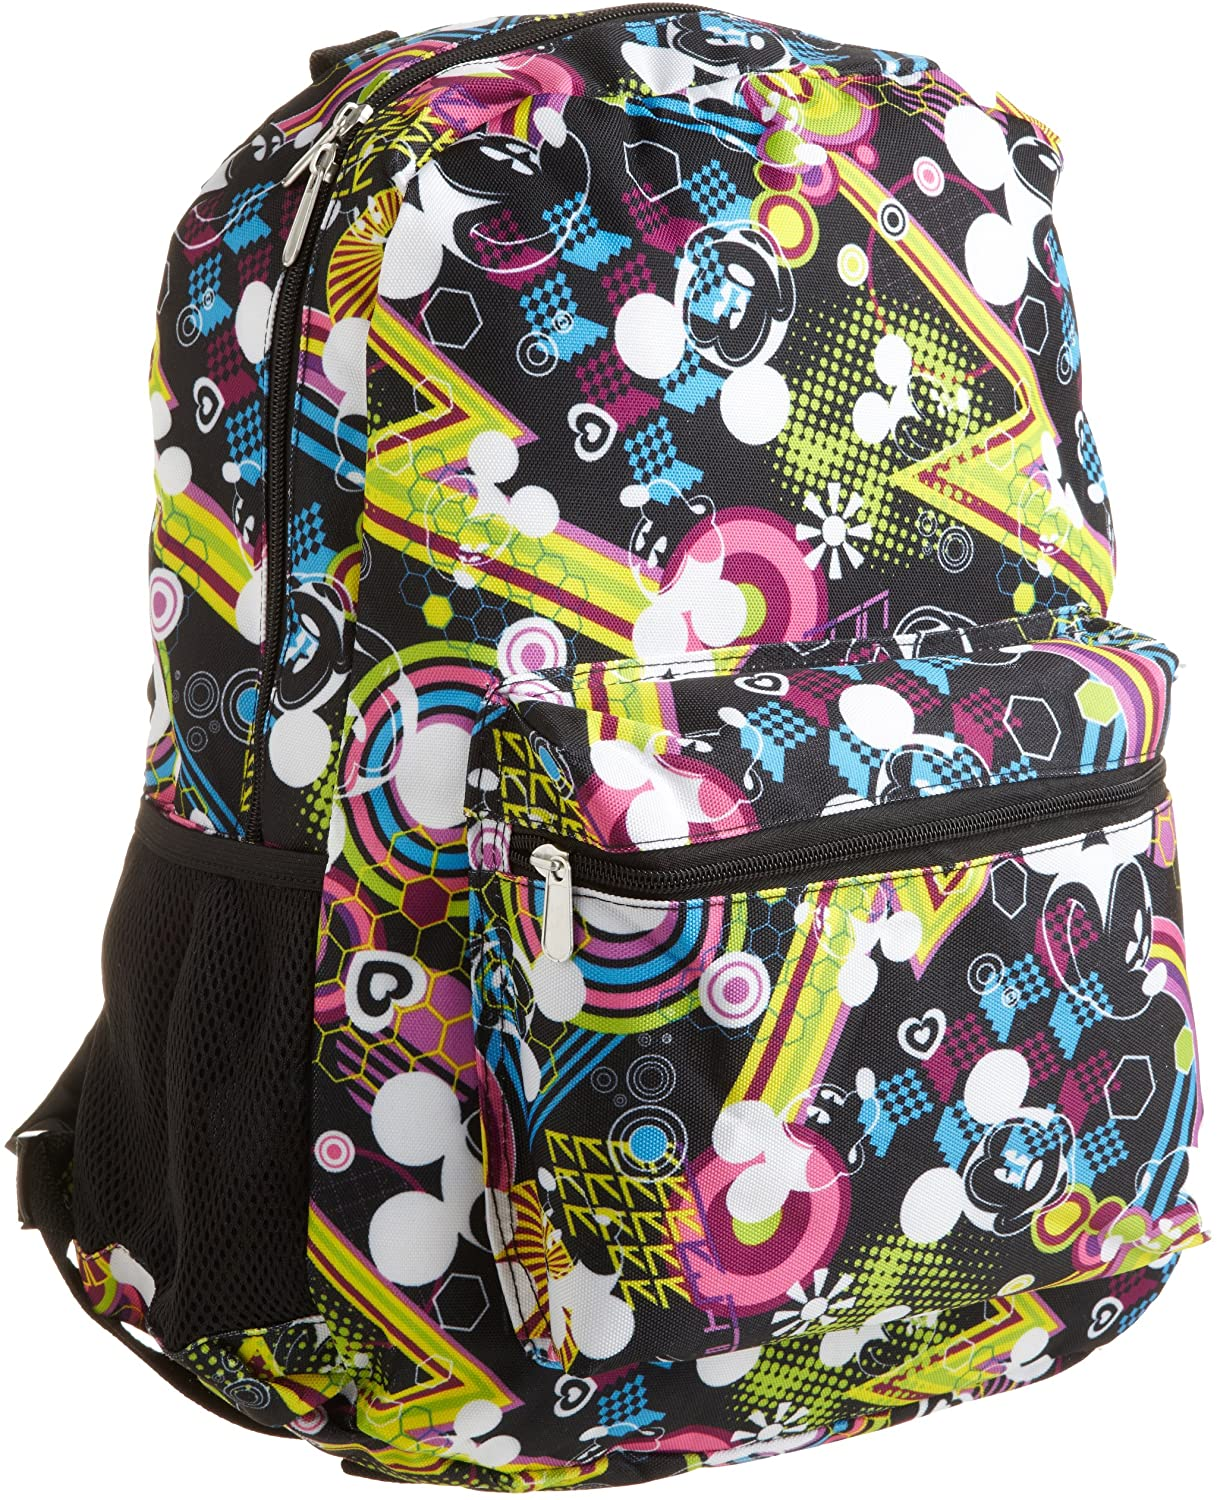 Disney Big Girls' Allover Mickey Pop Print Backpack - Black